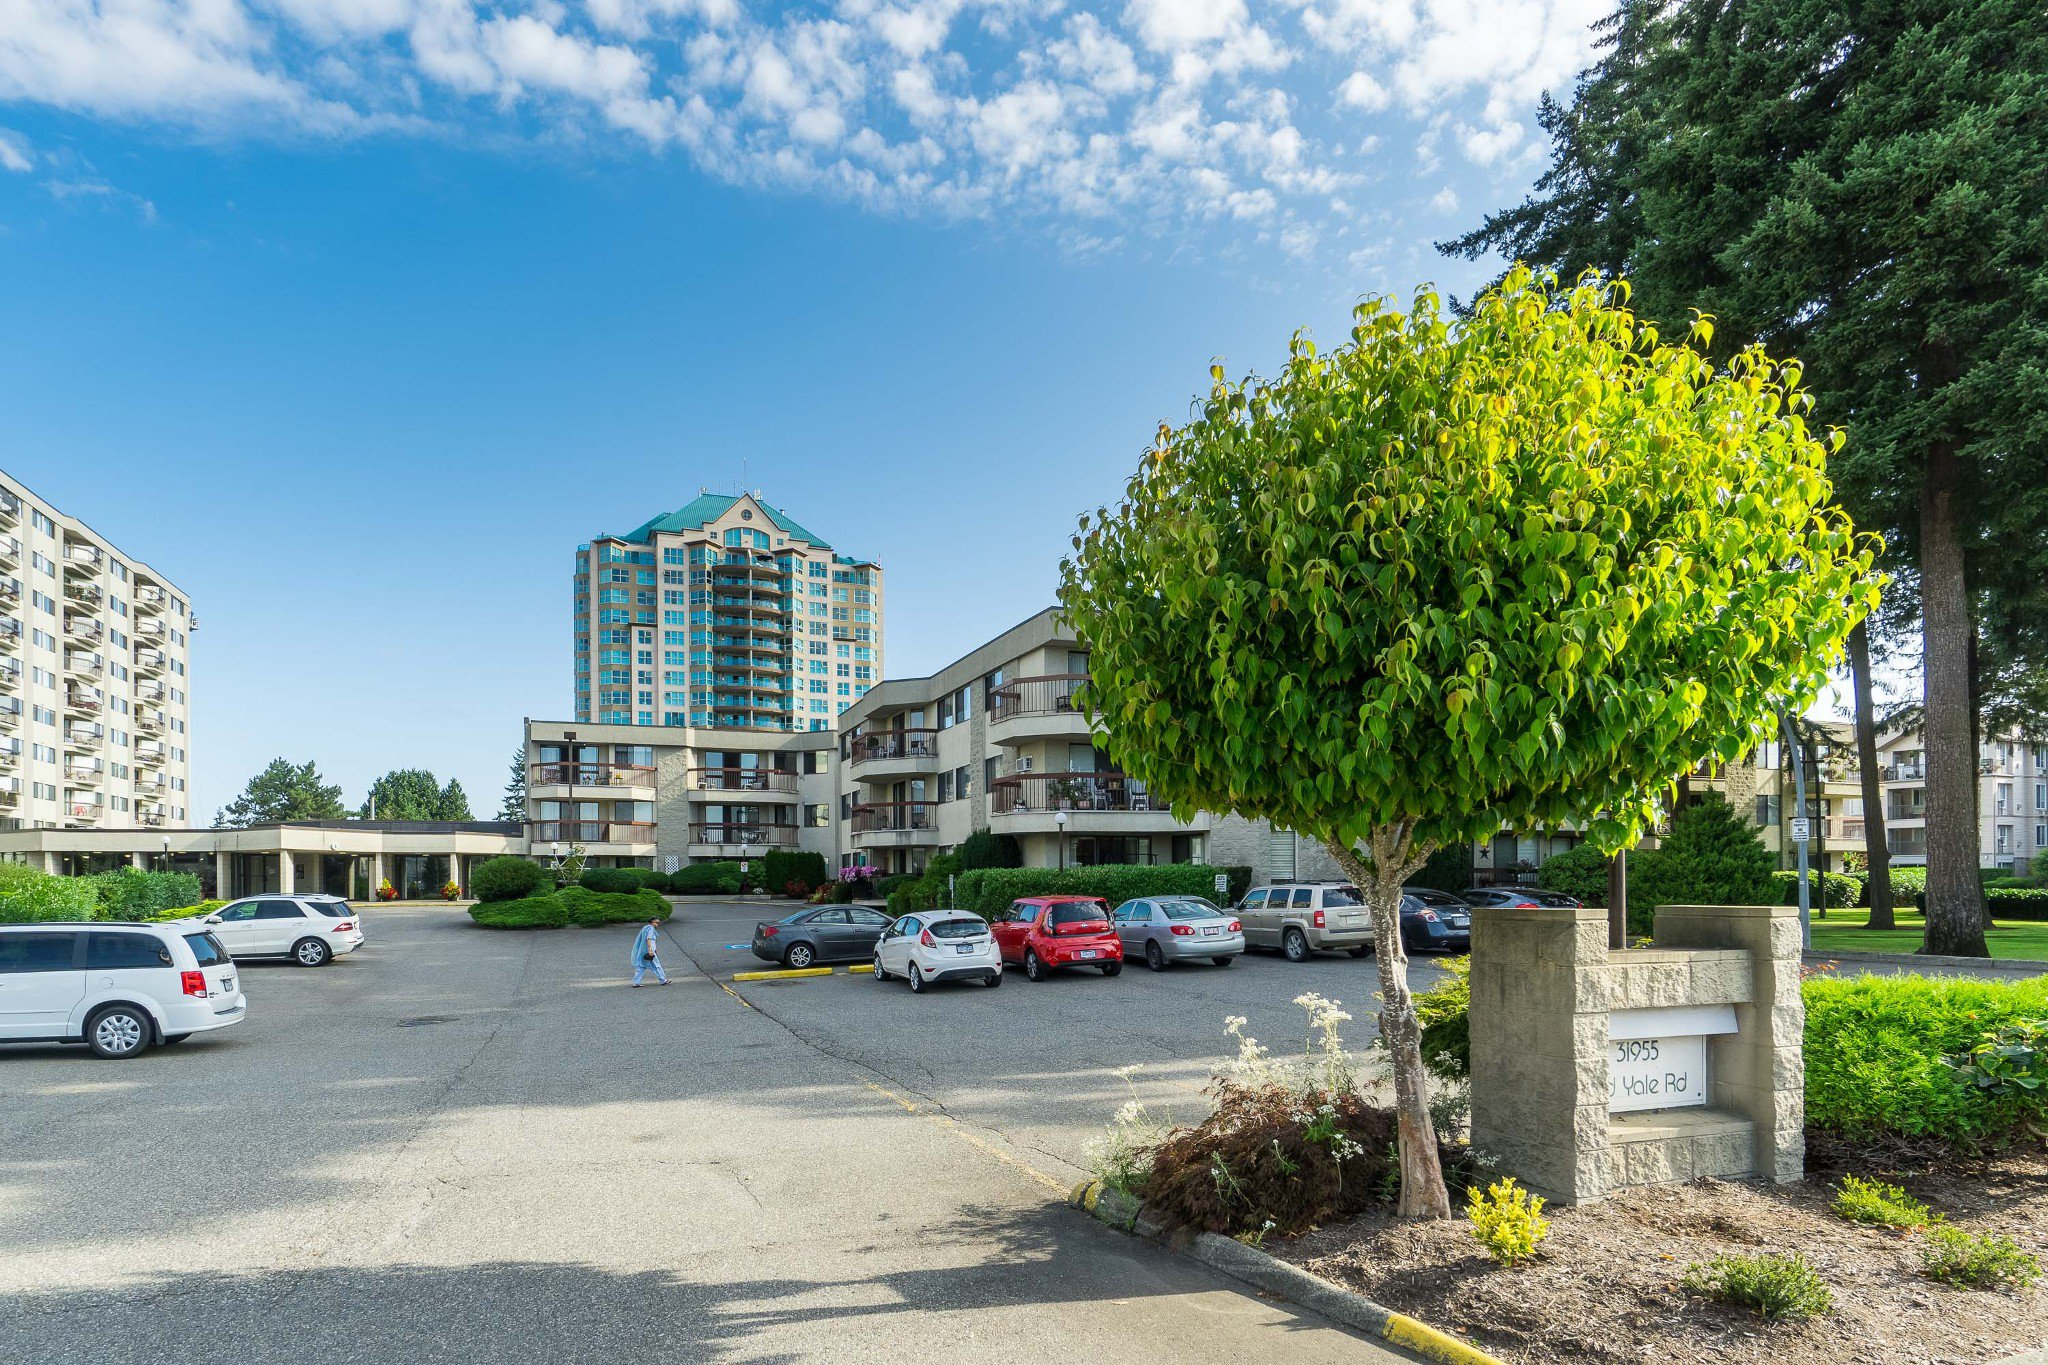 Main Photo: 135 31955 Old Yale Road in Abbotsford: Abbotsford West Condo for sale : MLS®# R2396453